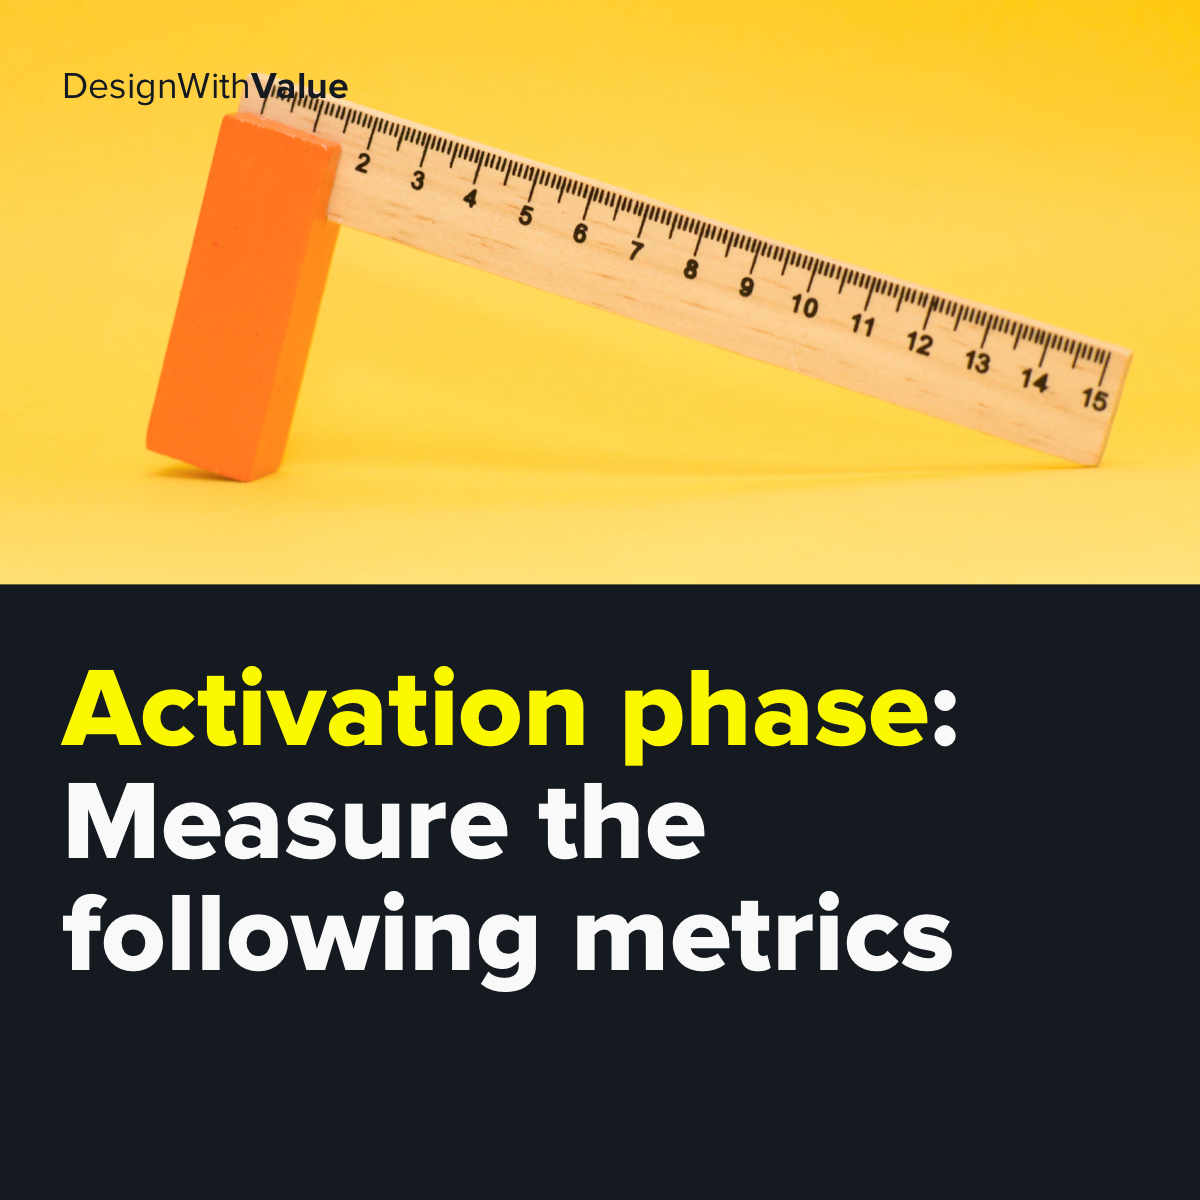 Measure the following metrics in the activation phase.